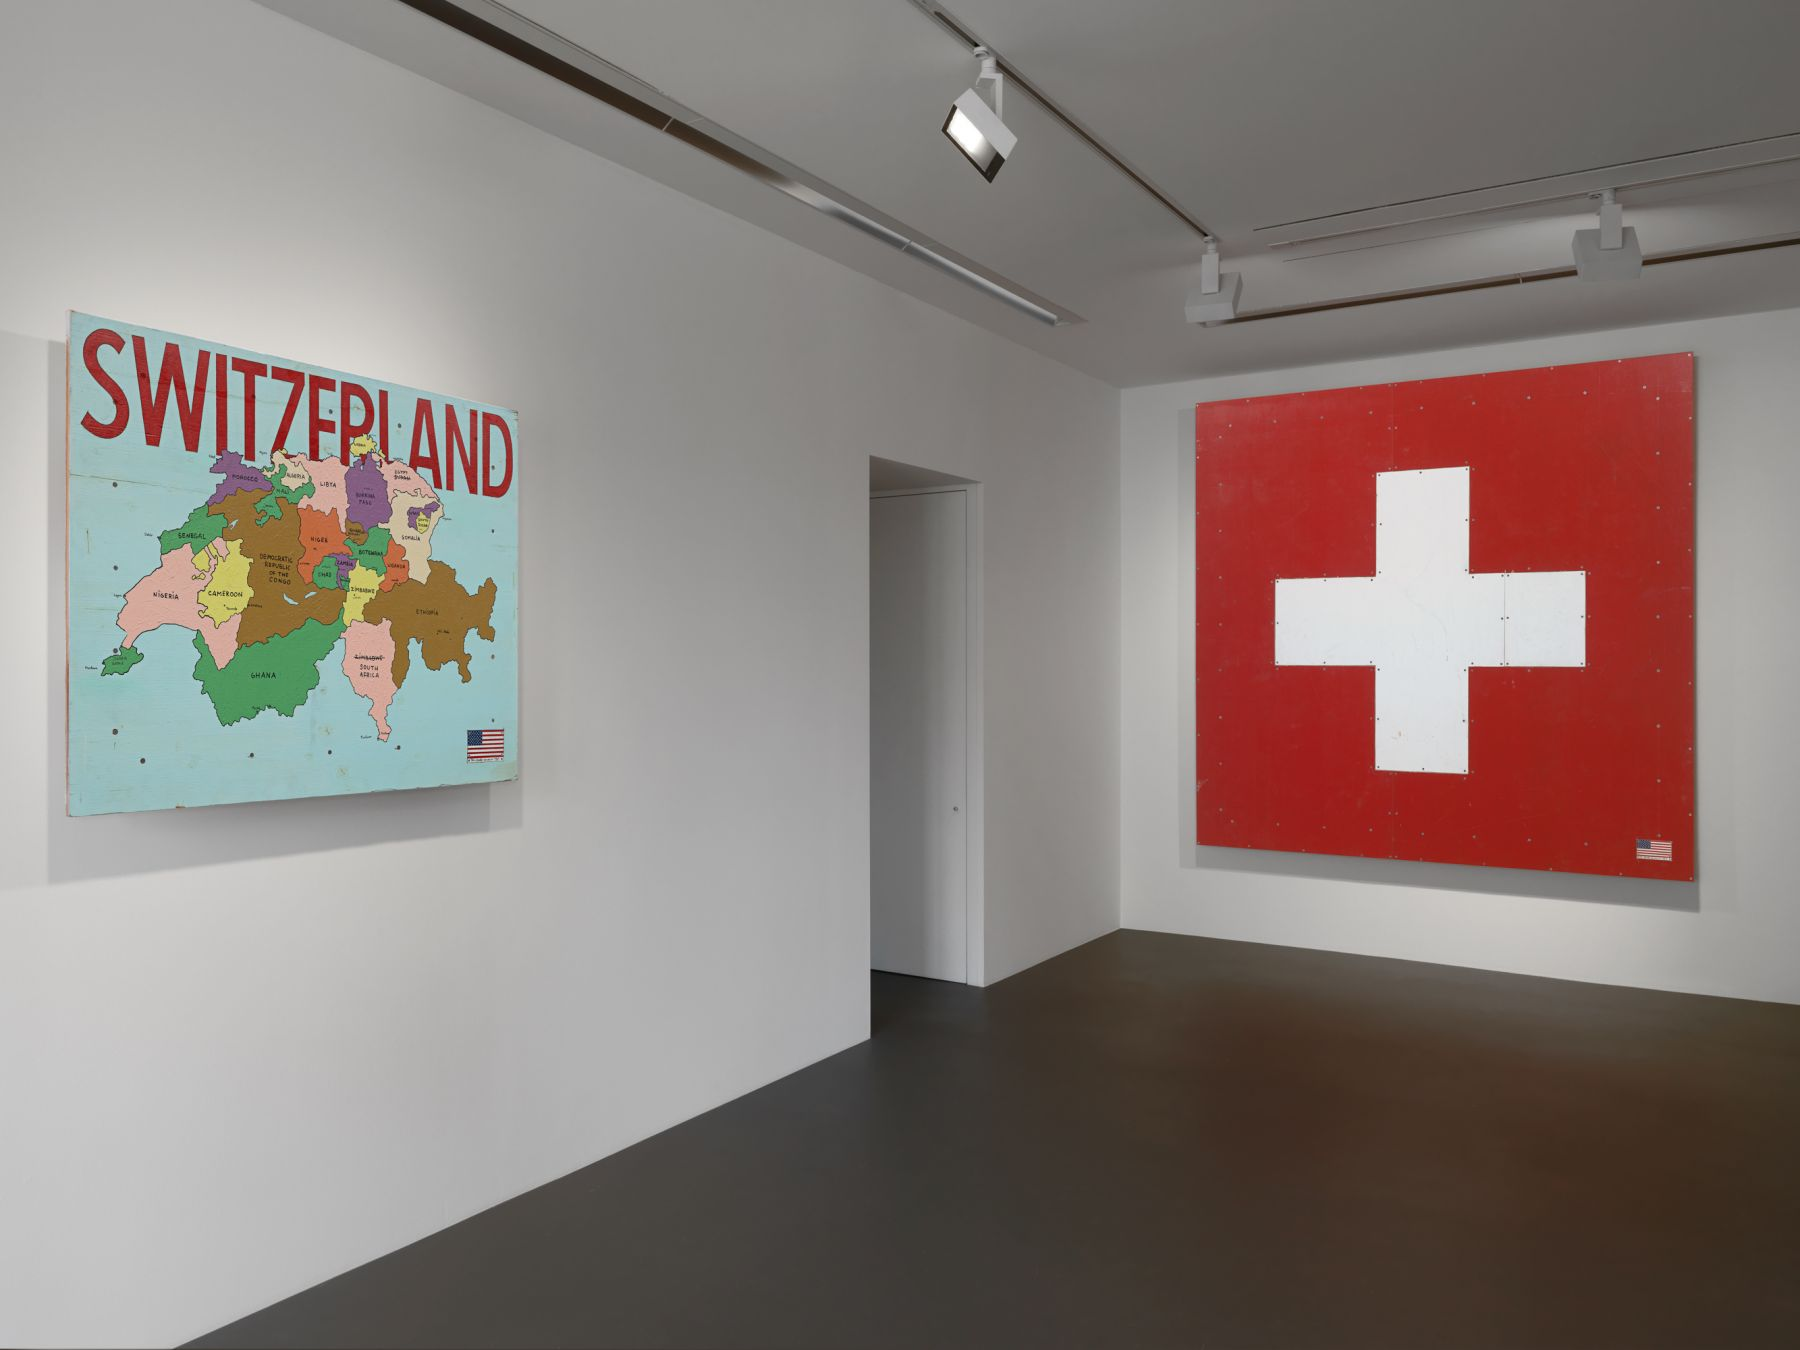 Installation view: Tom Sachs,The Pack, Vito Schnabel Gallery, St. Moritz, 2018-2019, © Tom Sachs; Photos by Stefan Altenburger; Courtesy Tom Sachs Studio and Vito Schnabel Gallery